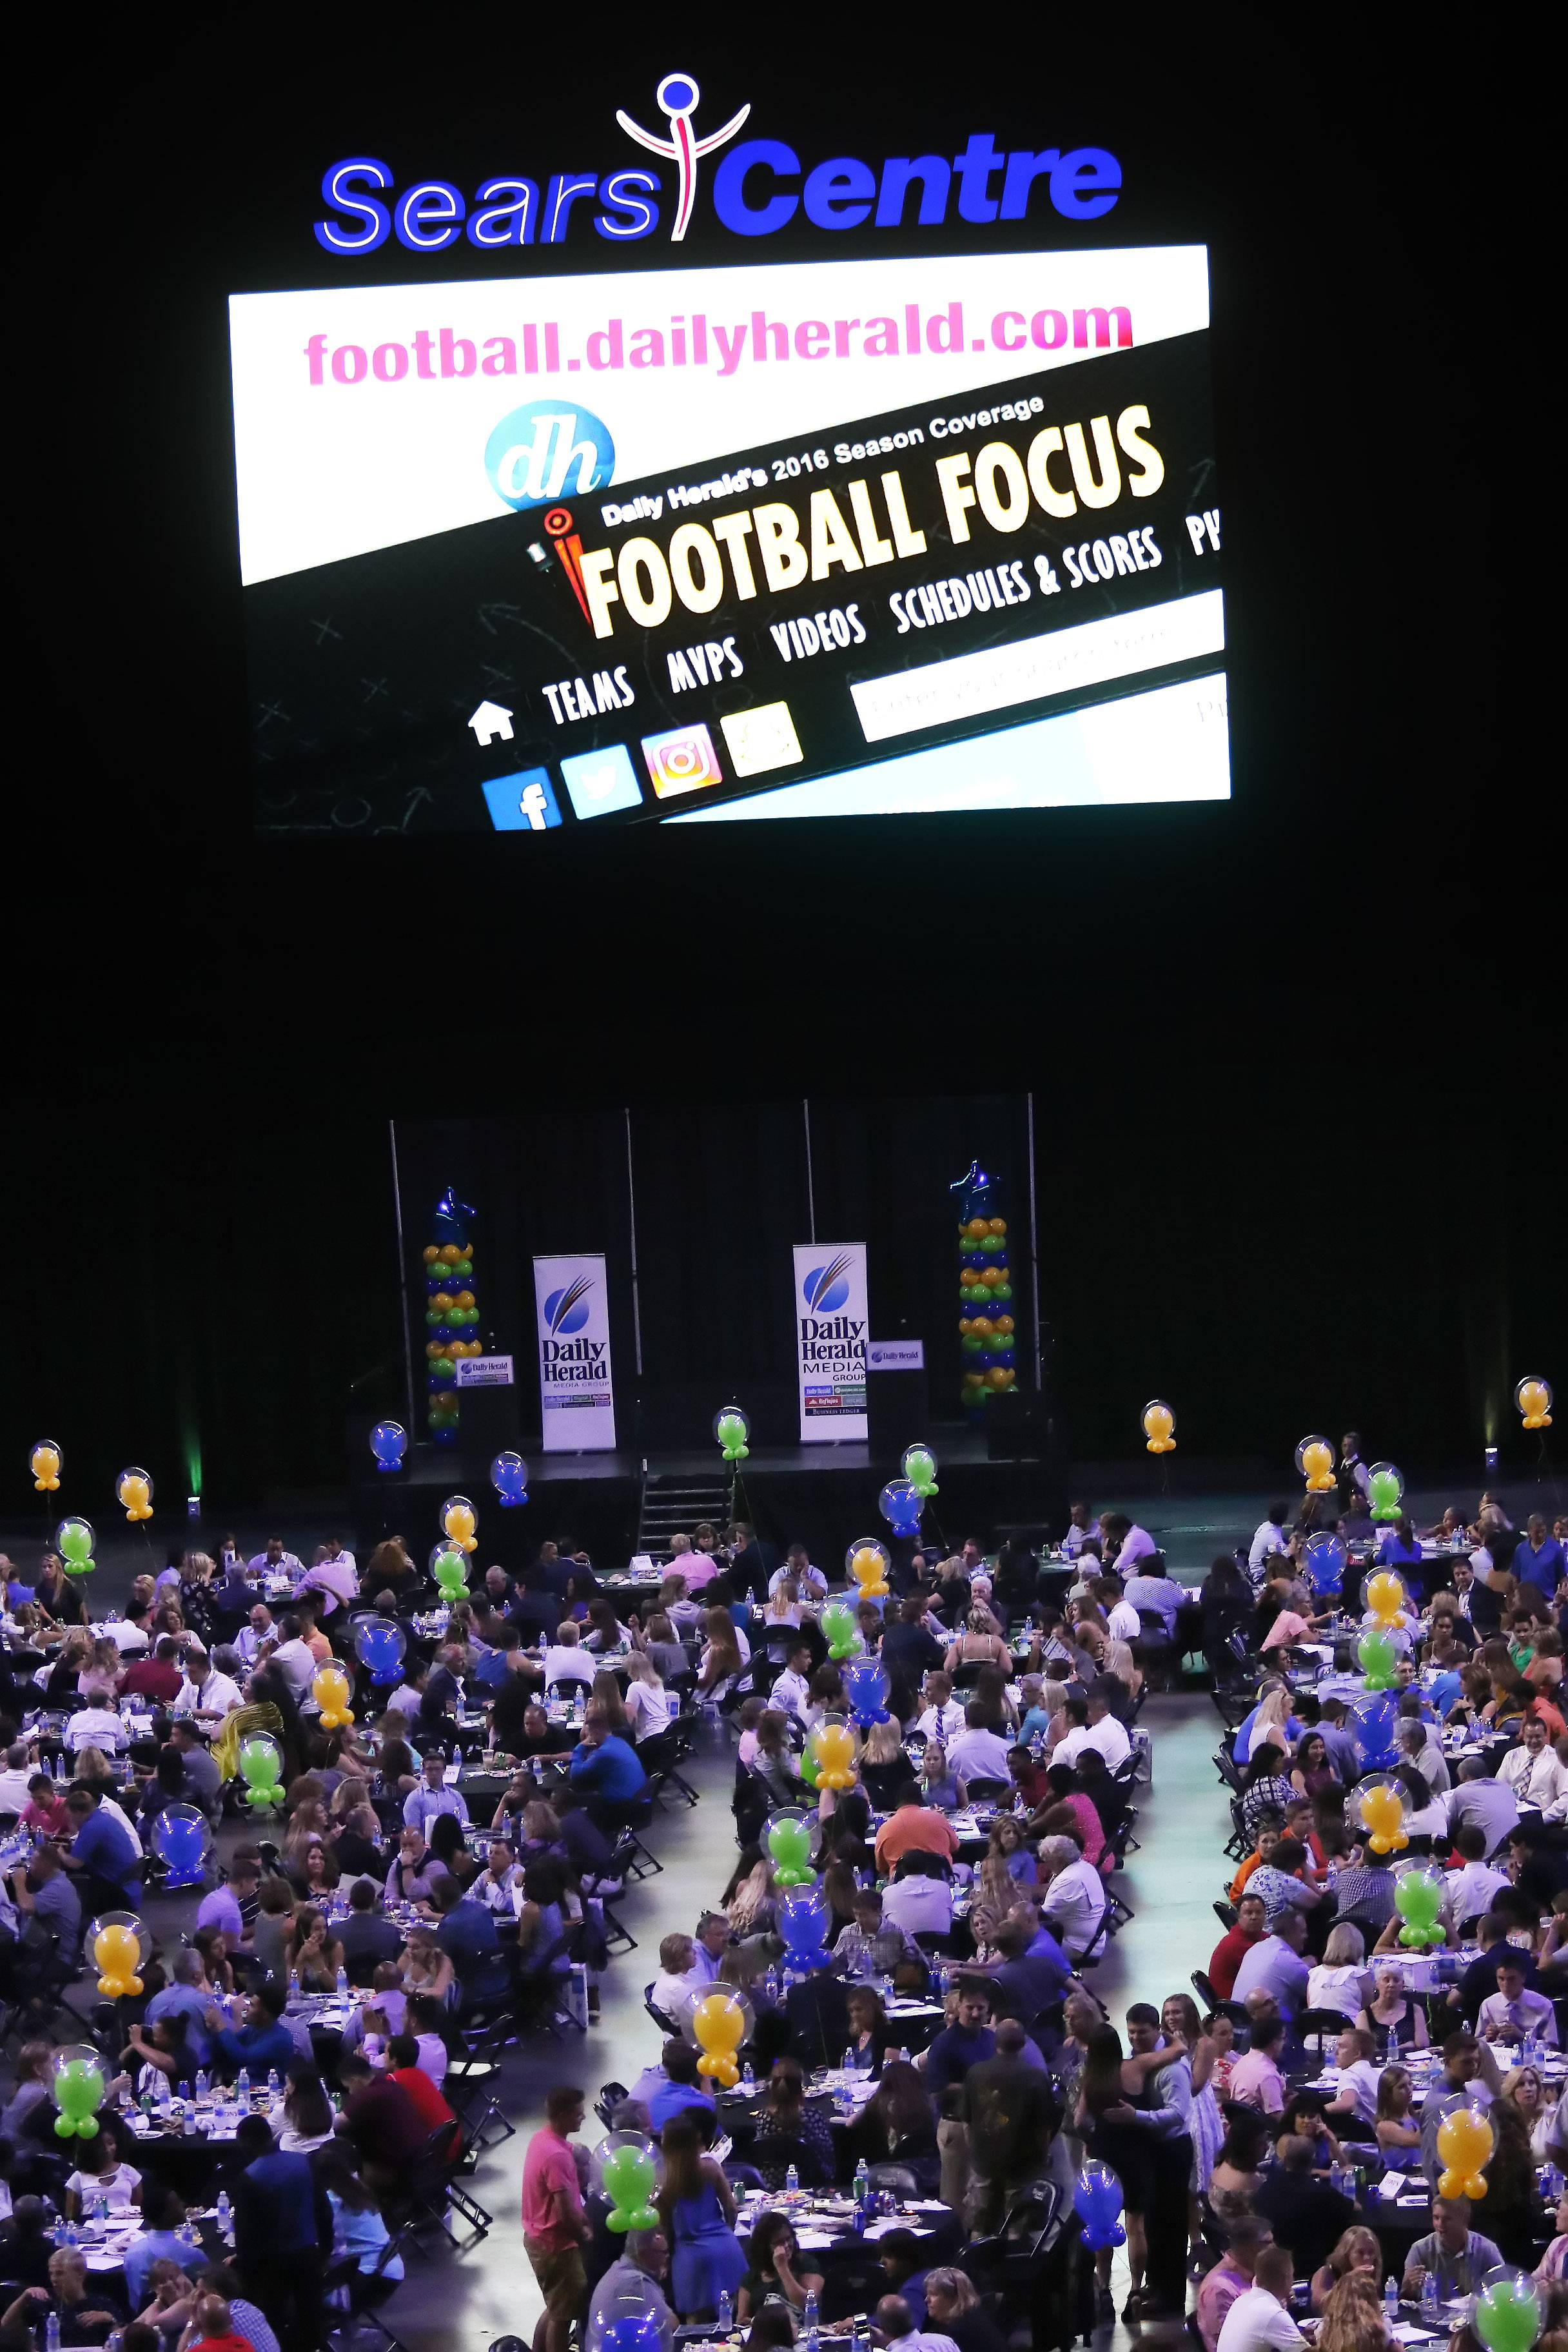 The Daily Herald Preps Sports Excellence Awards Monday night at the Sears Centre Arena in Hoffman Estates. About 1,000 people attended the banquet recognizing the best athletes and coaches in the area for the past school year.